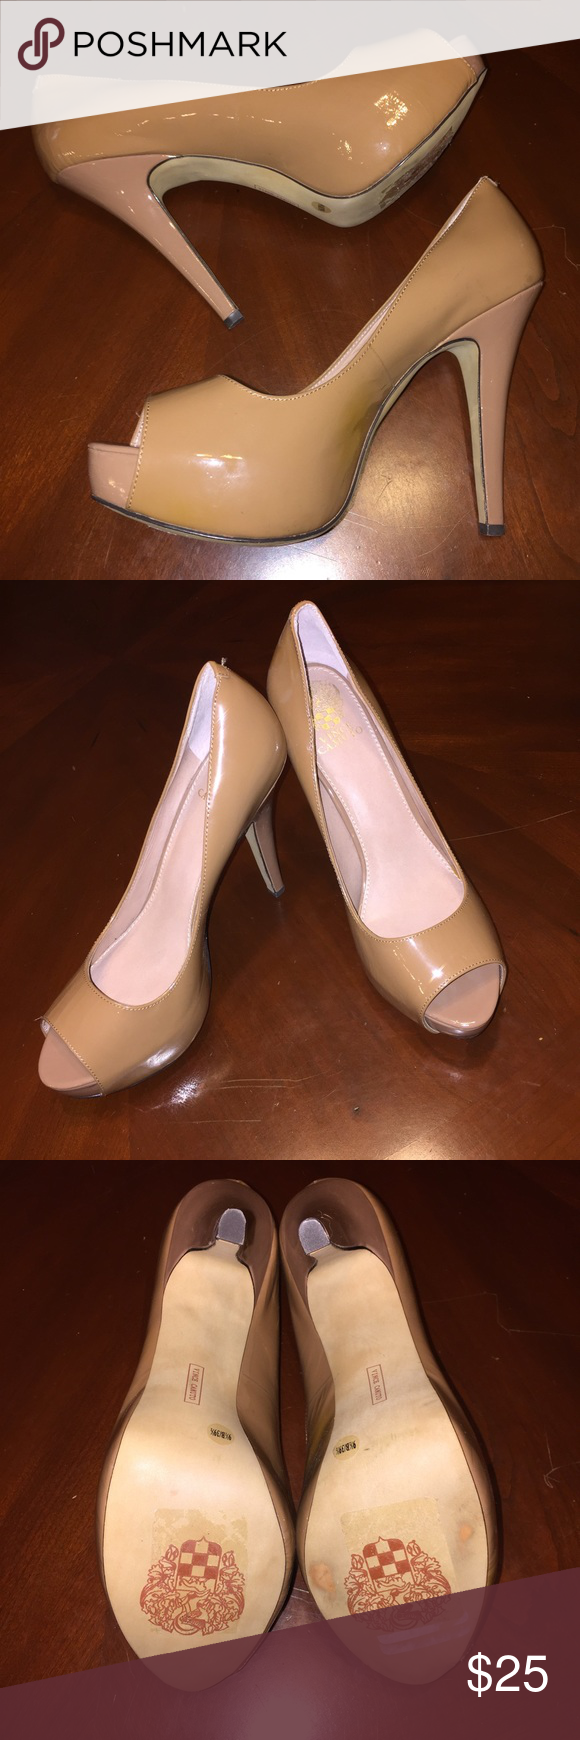 Vince Camuto Platform Peep Toes Vince Camuto Platform Peep Toes   Size 9.5 5 inch heel Barely worn (once for less than an hour) -  Great condition! Vince Camuto Shoes